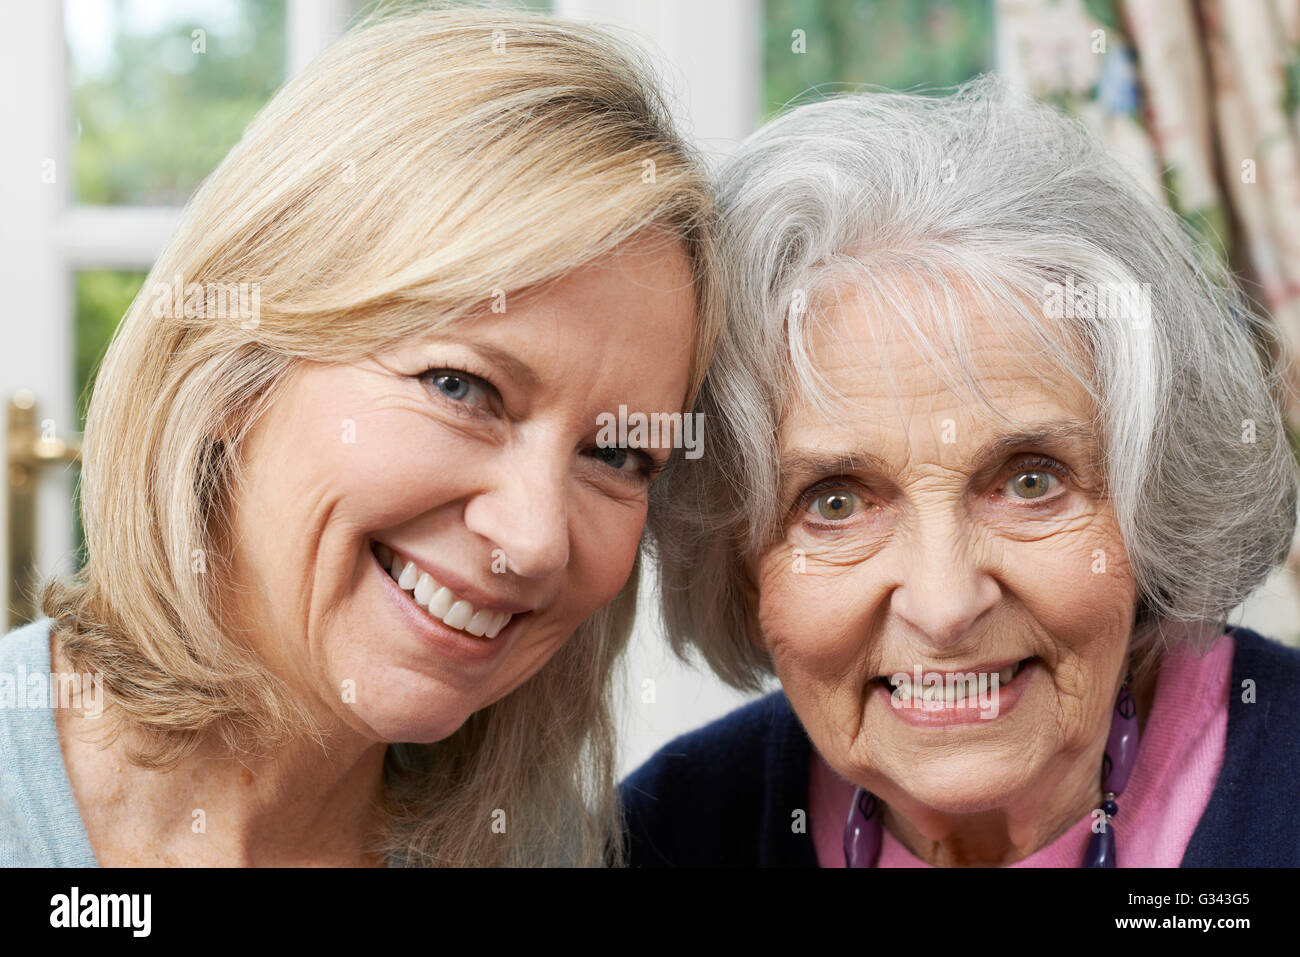 Portrait of Senior Mother and Daughter Photo Stock